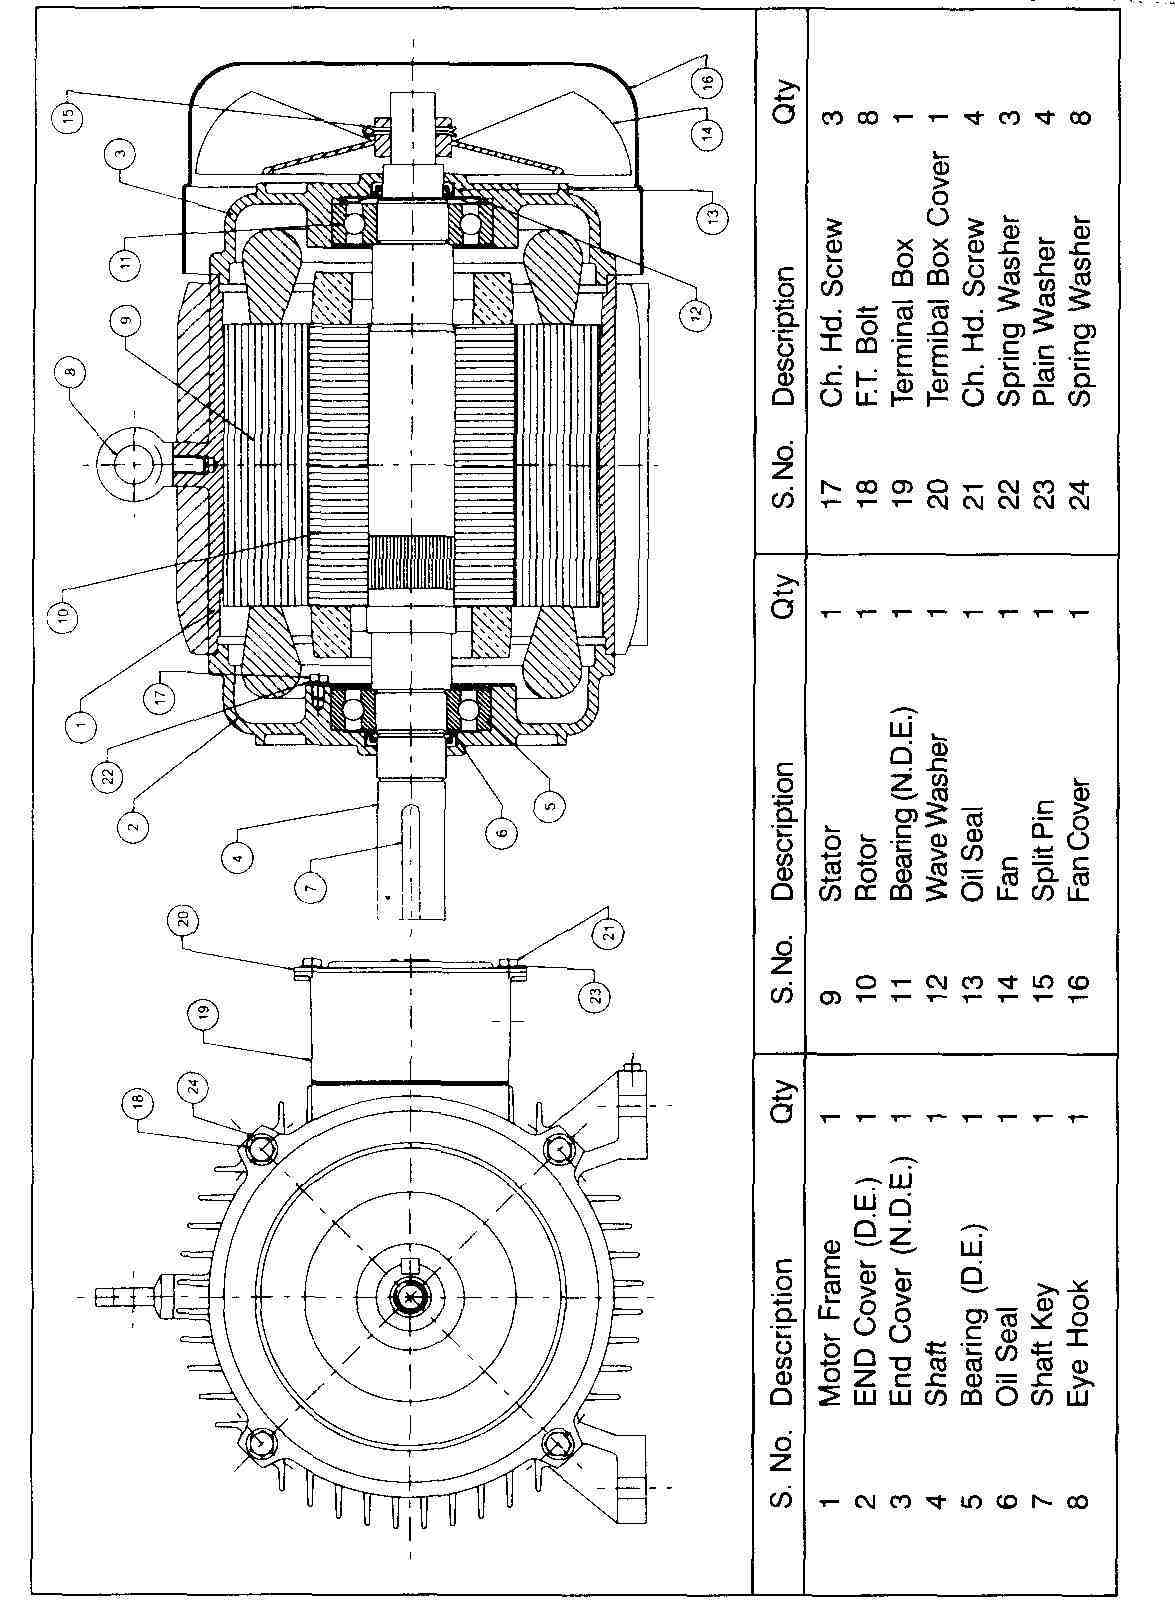 Induction Motor Spare Parts List